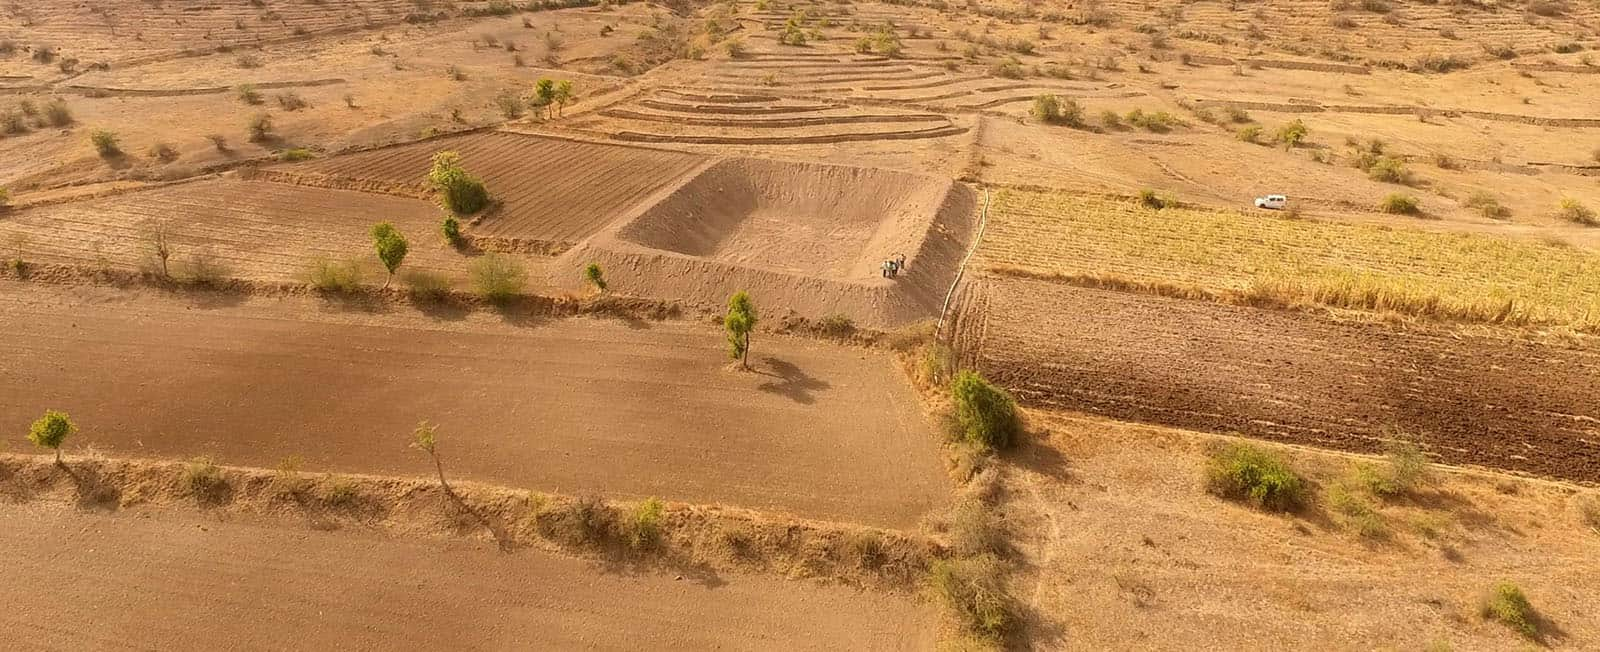 Paani Foundation - A people's movement to fight drought